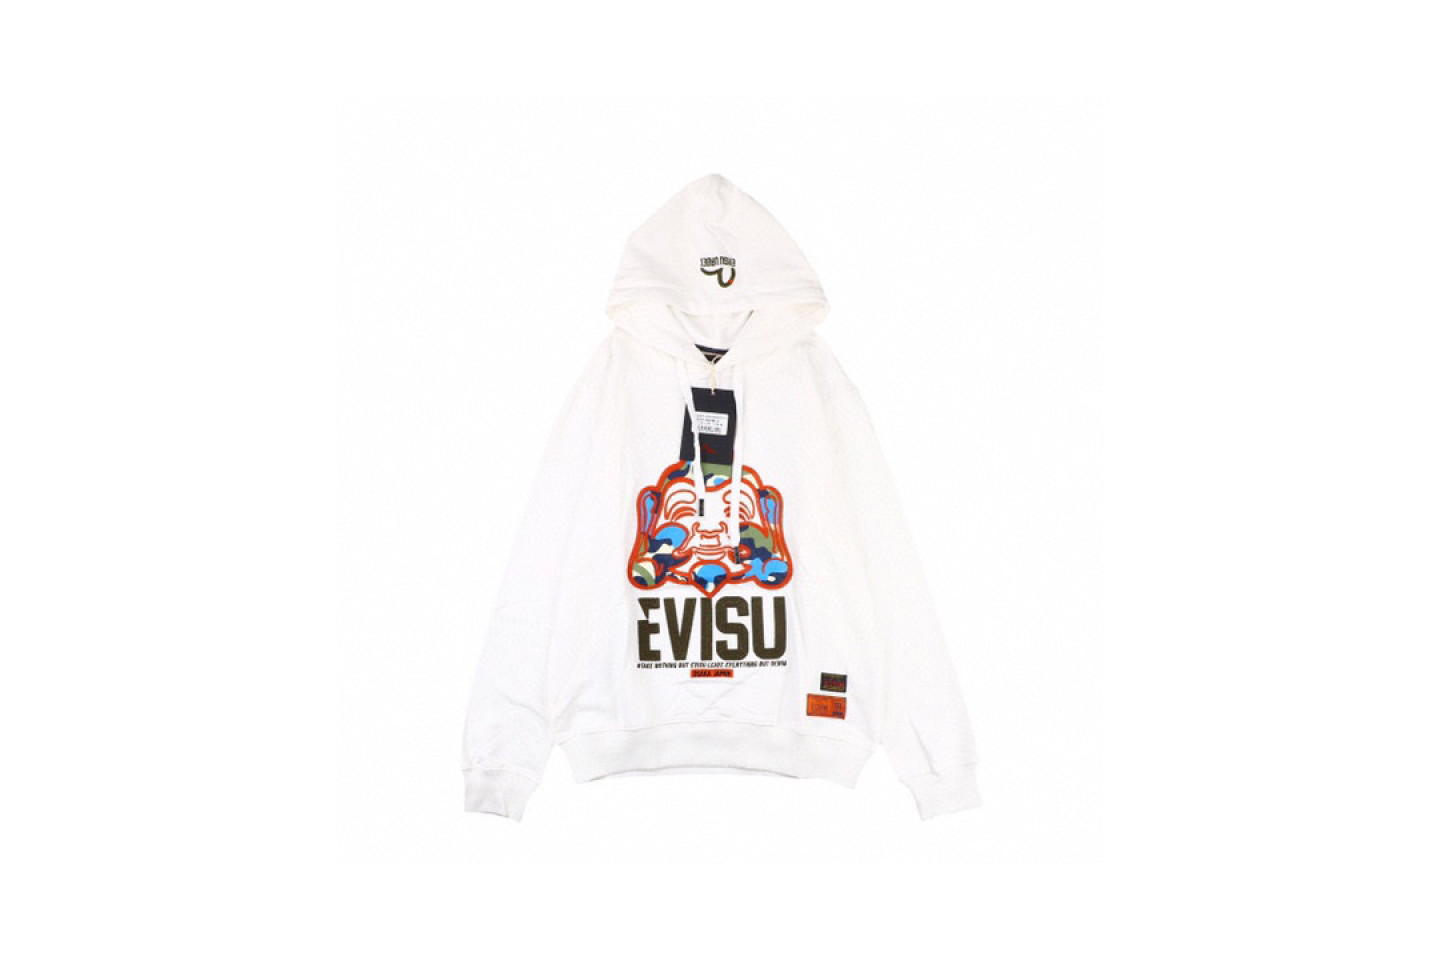 "Jacket Evisu 20fw camouflage buddha head embroidered sweatshirt ""White"" 1 evisu_20fw_camouflage_buddha_head_embroidered_sweatshirt_white_1"